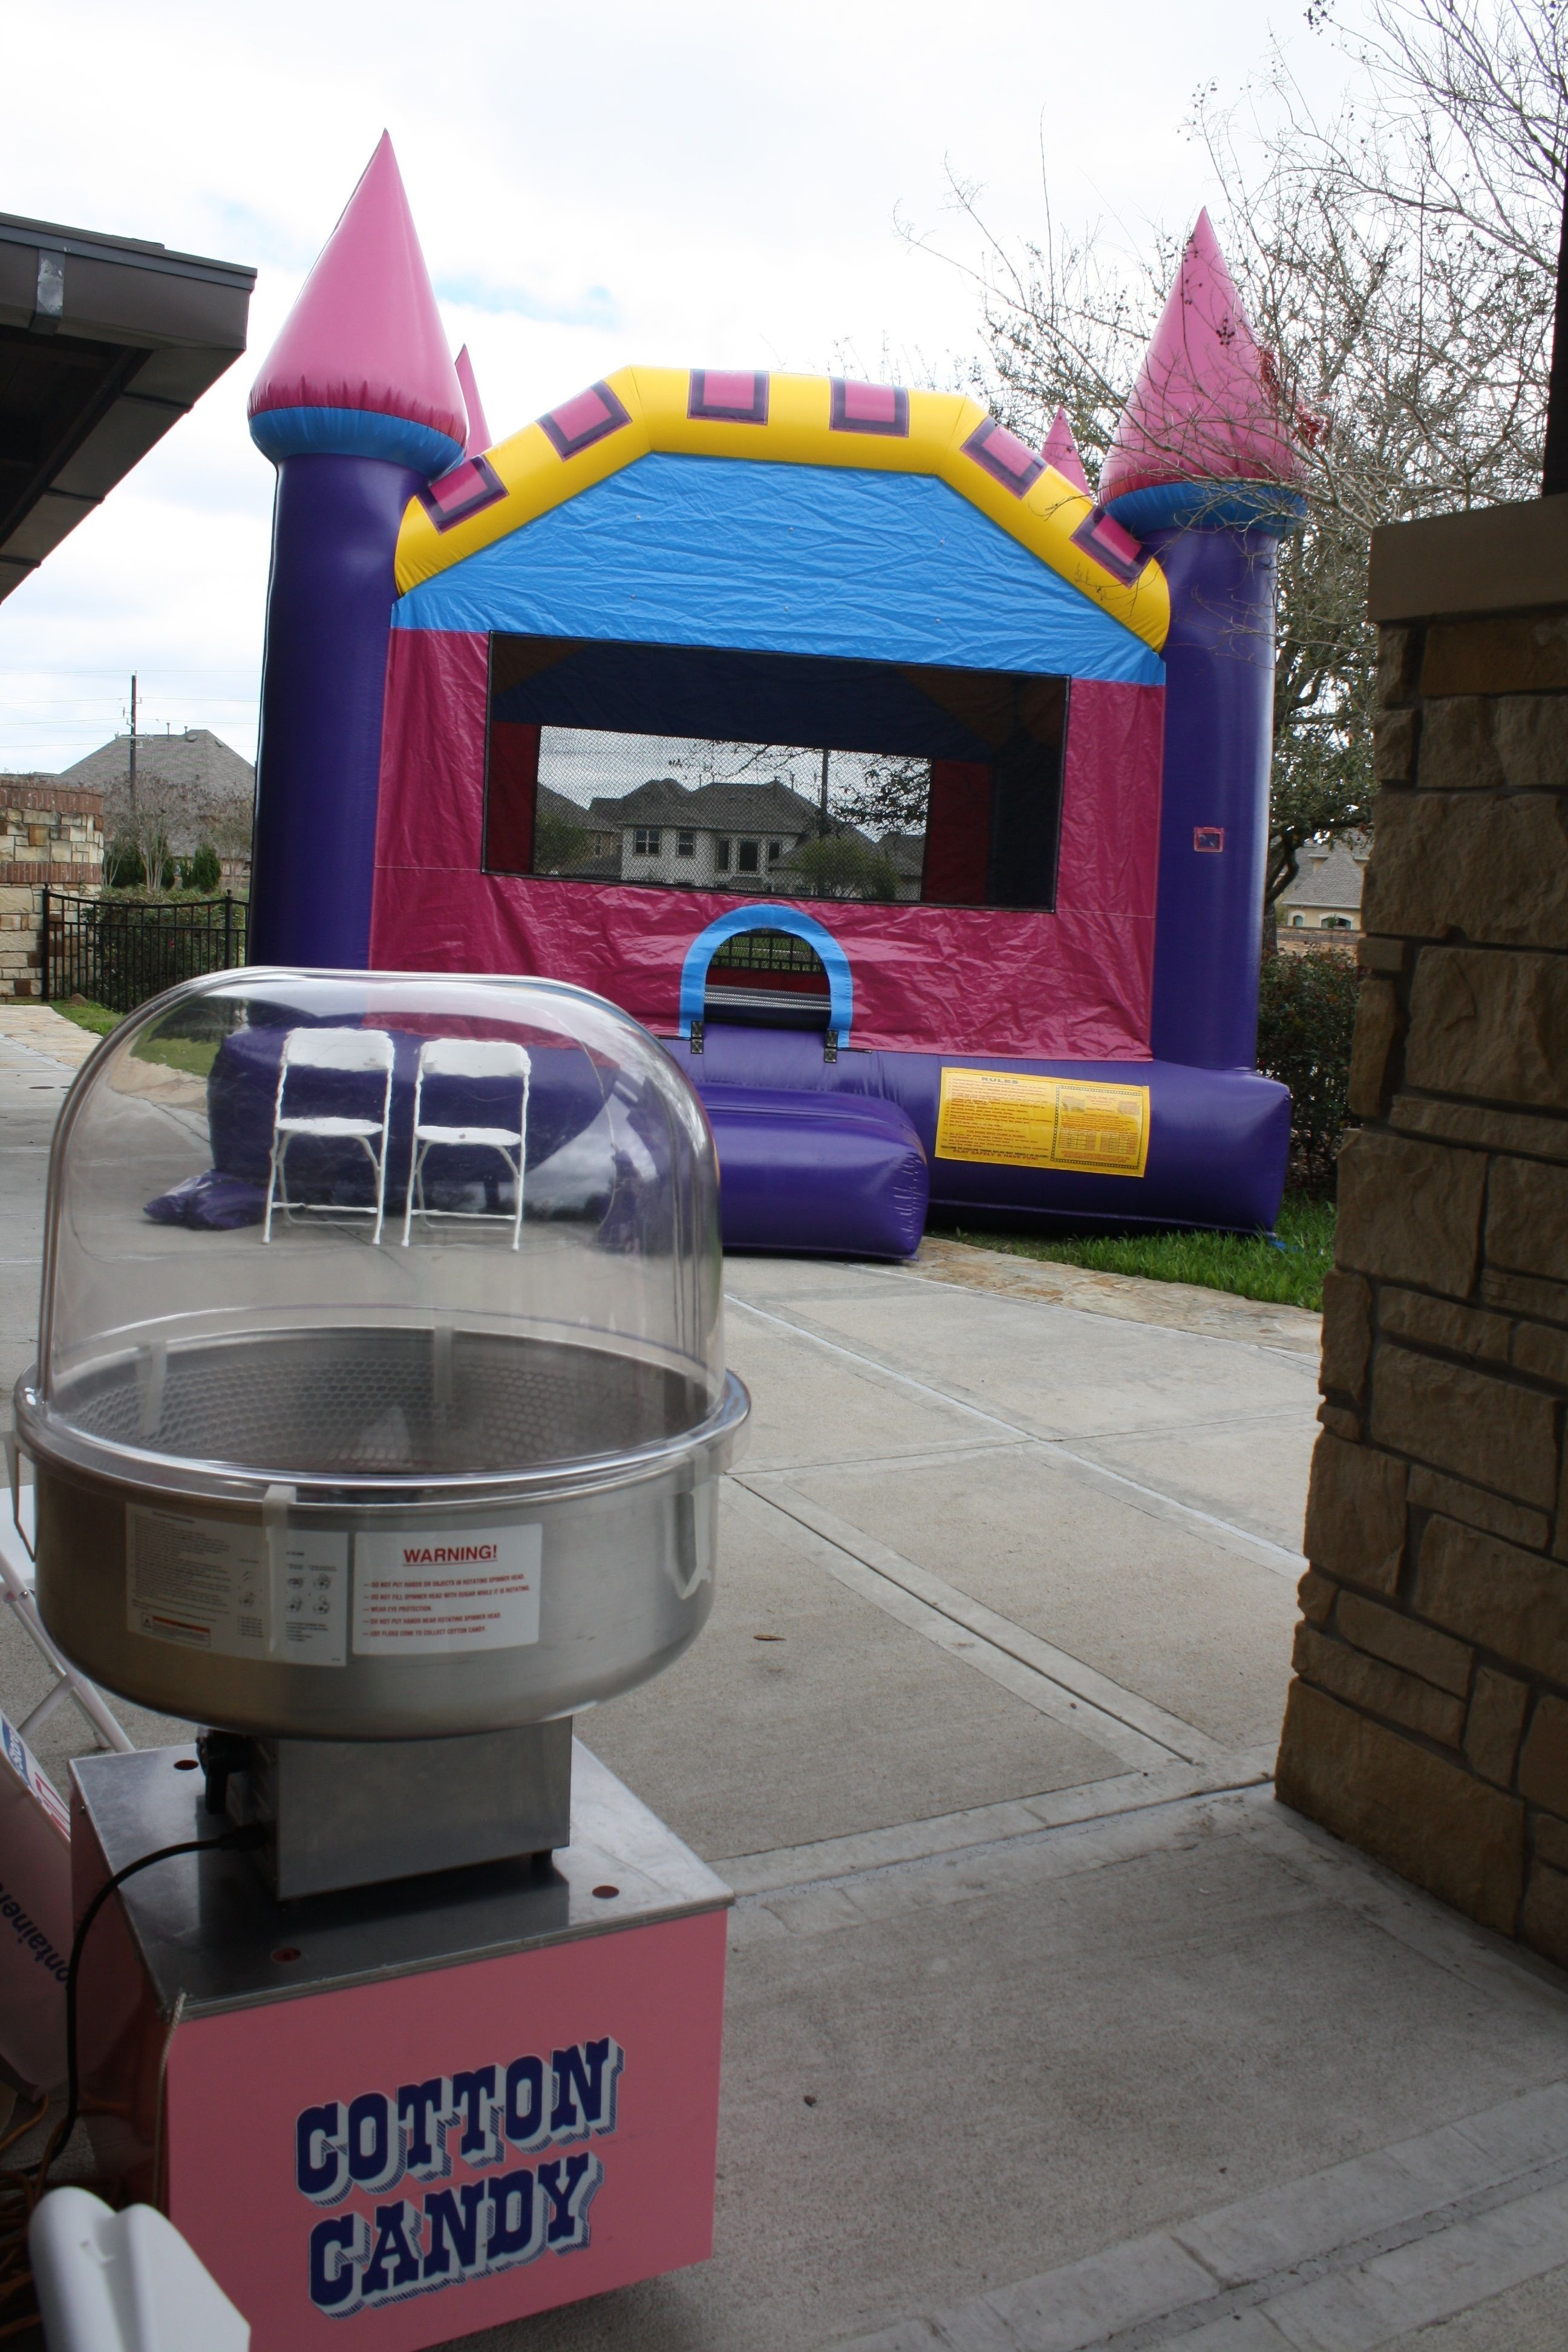 Pink Gold Princess Party Bounce House And Cotton Candy Machine From All Around Houston TX